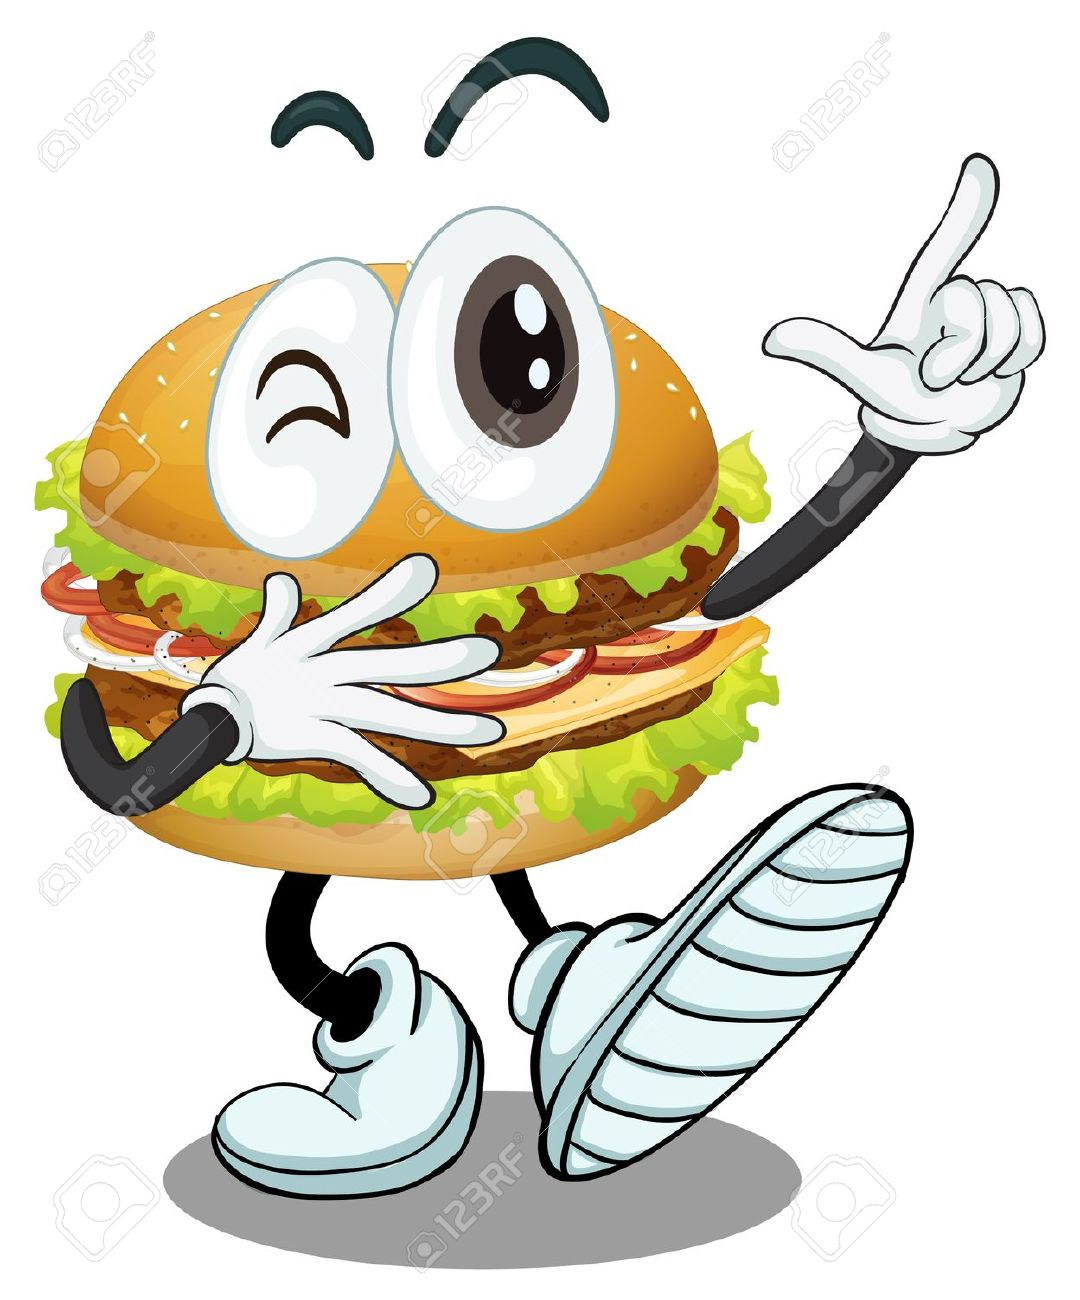 Burger Clipart Stock Photos & Pictures. Royalty Free Burger.